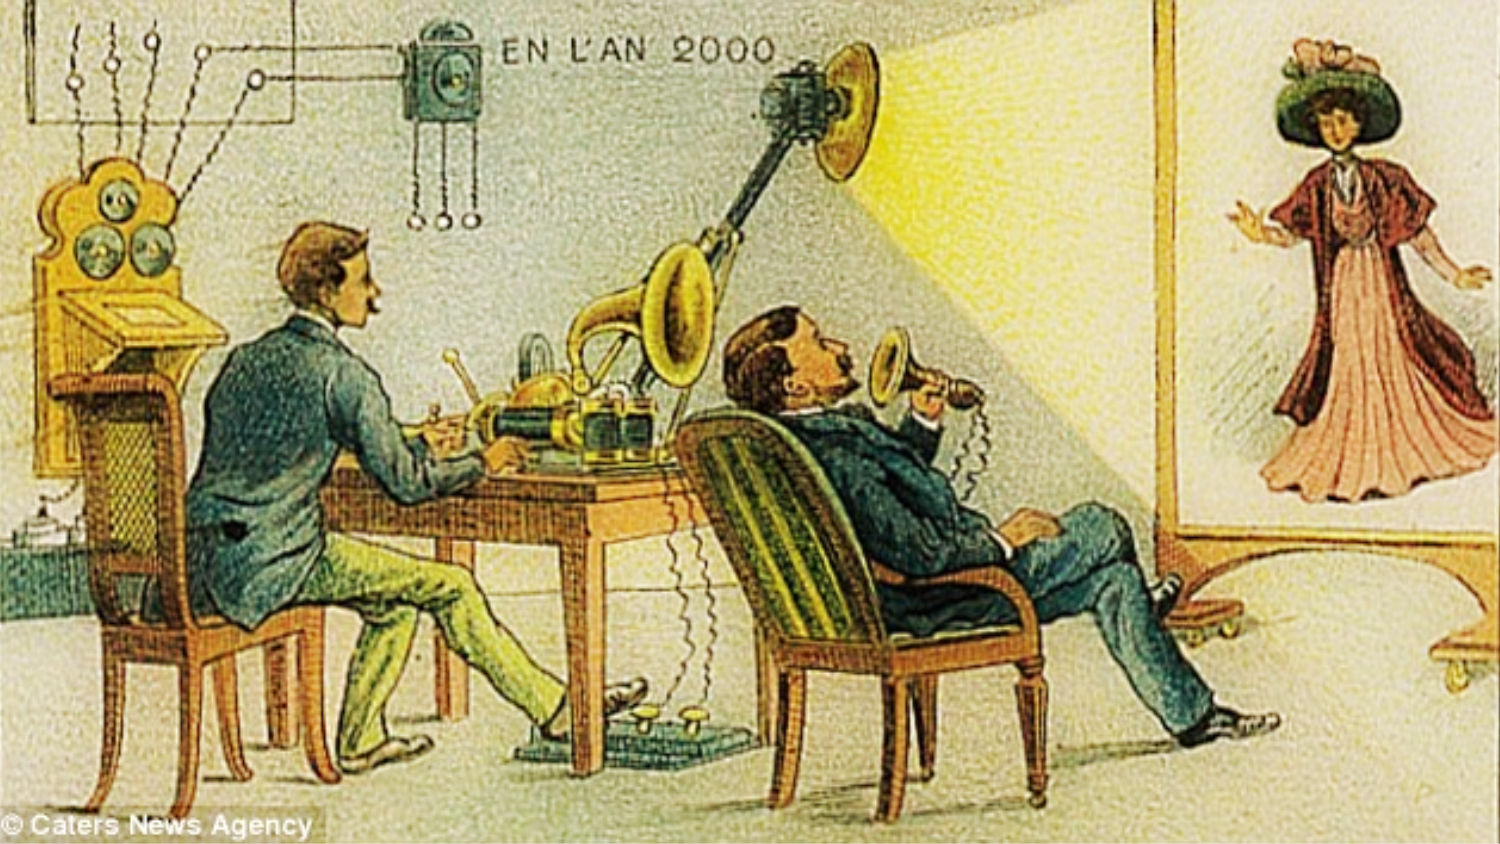 1899 illustration of the year 2000